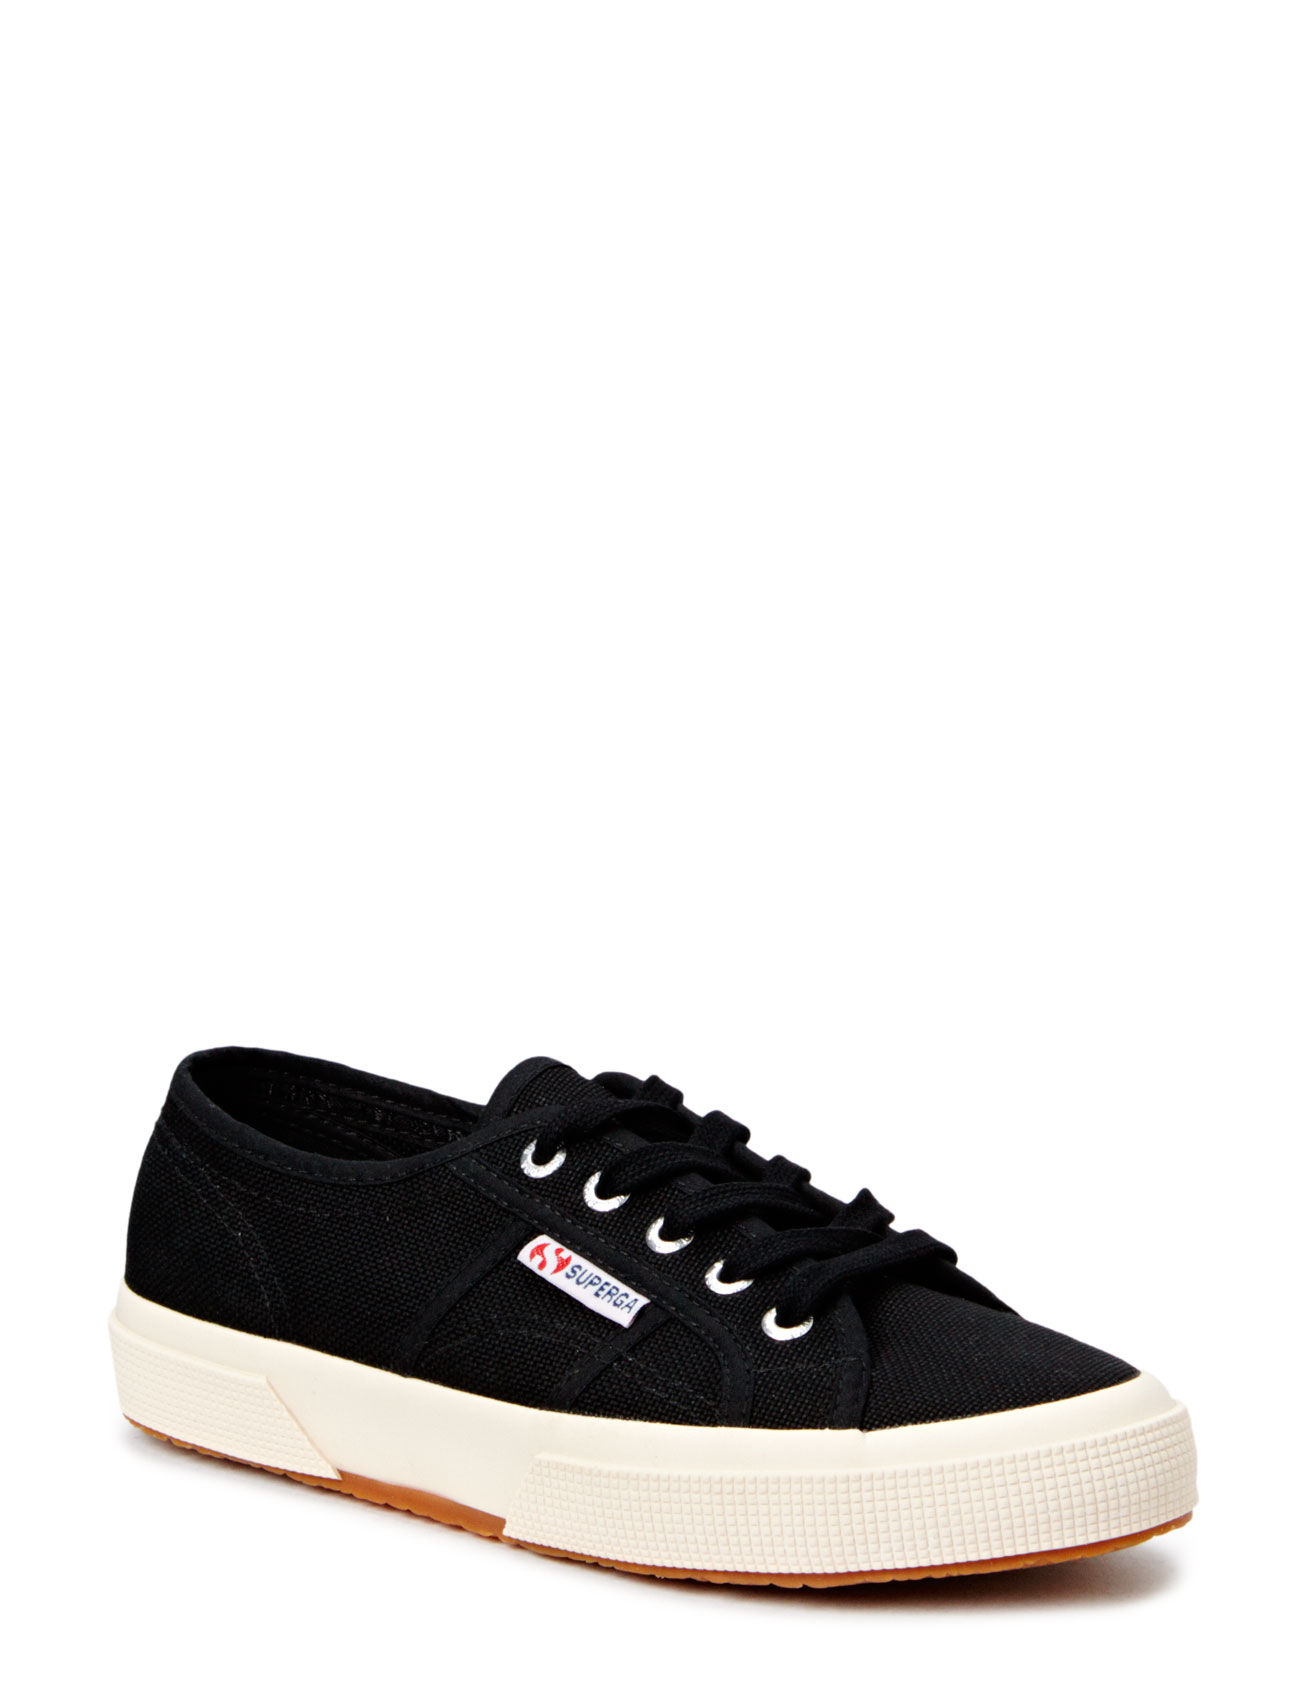 Superga 2750 Cotu Classic Superga Sneakers til Herrer i Sort